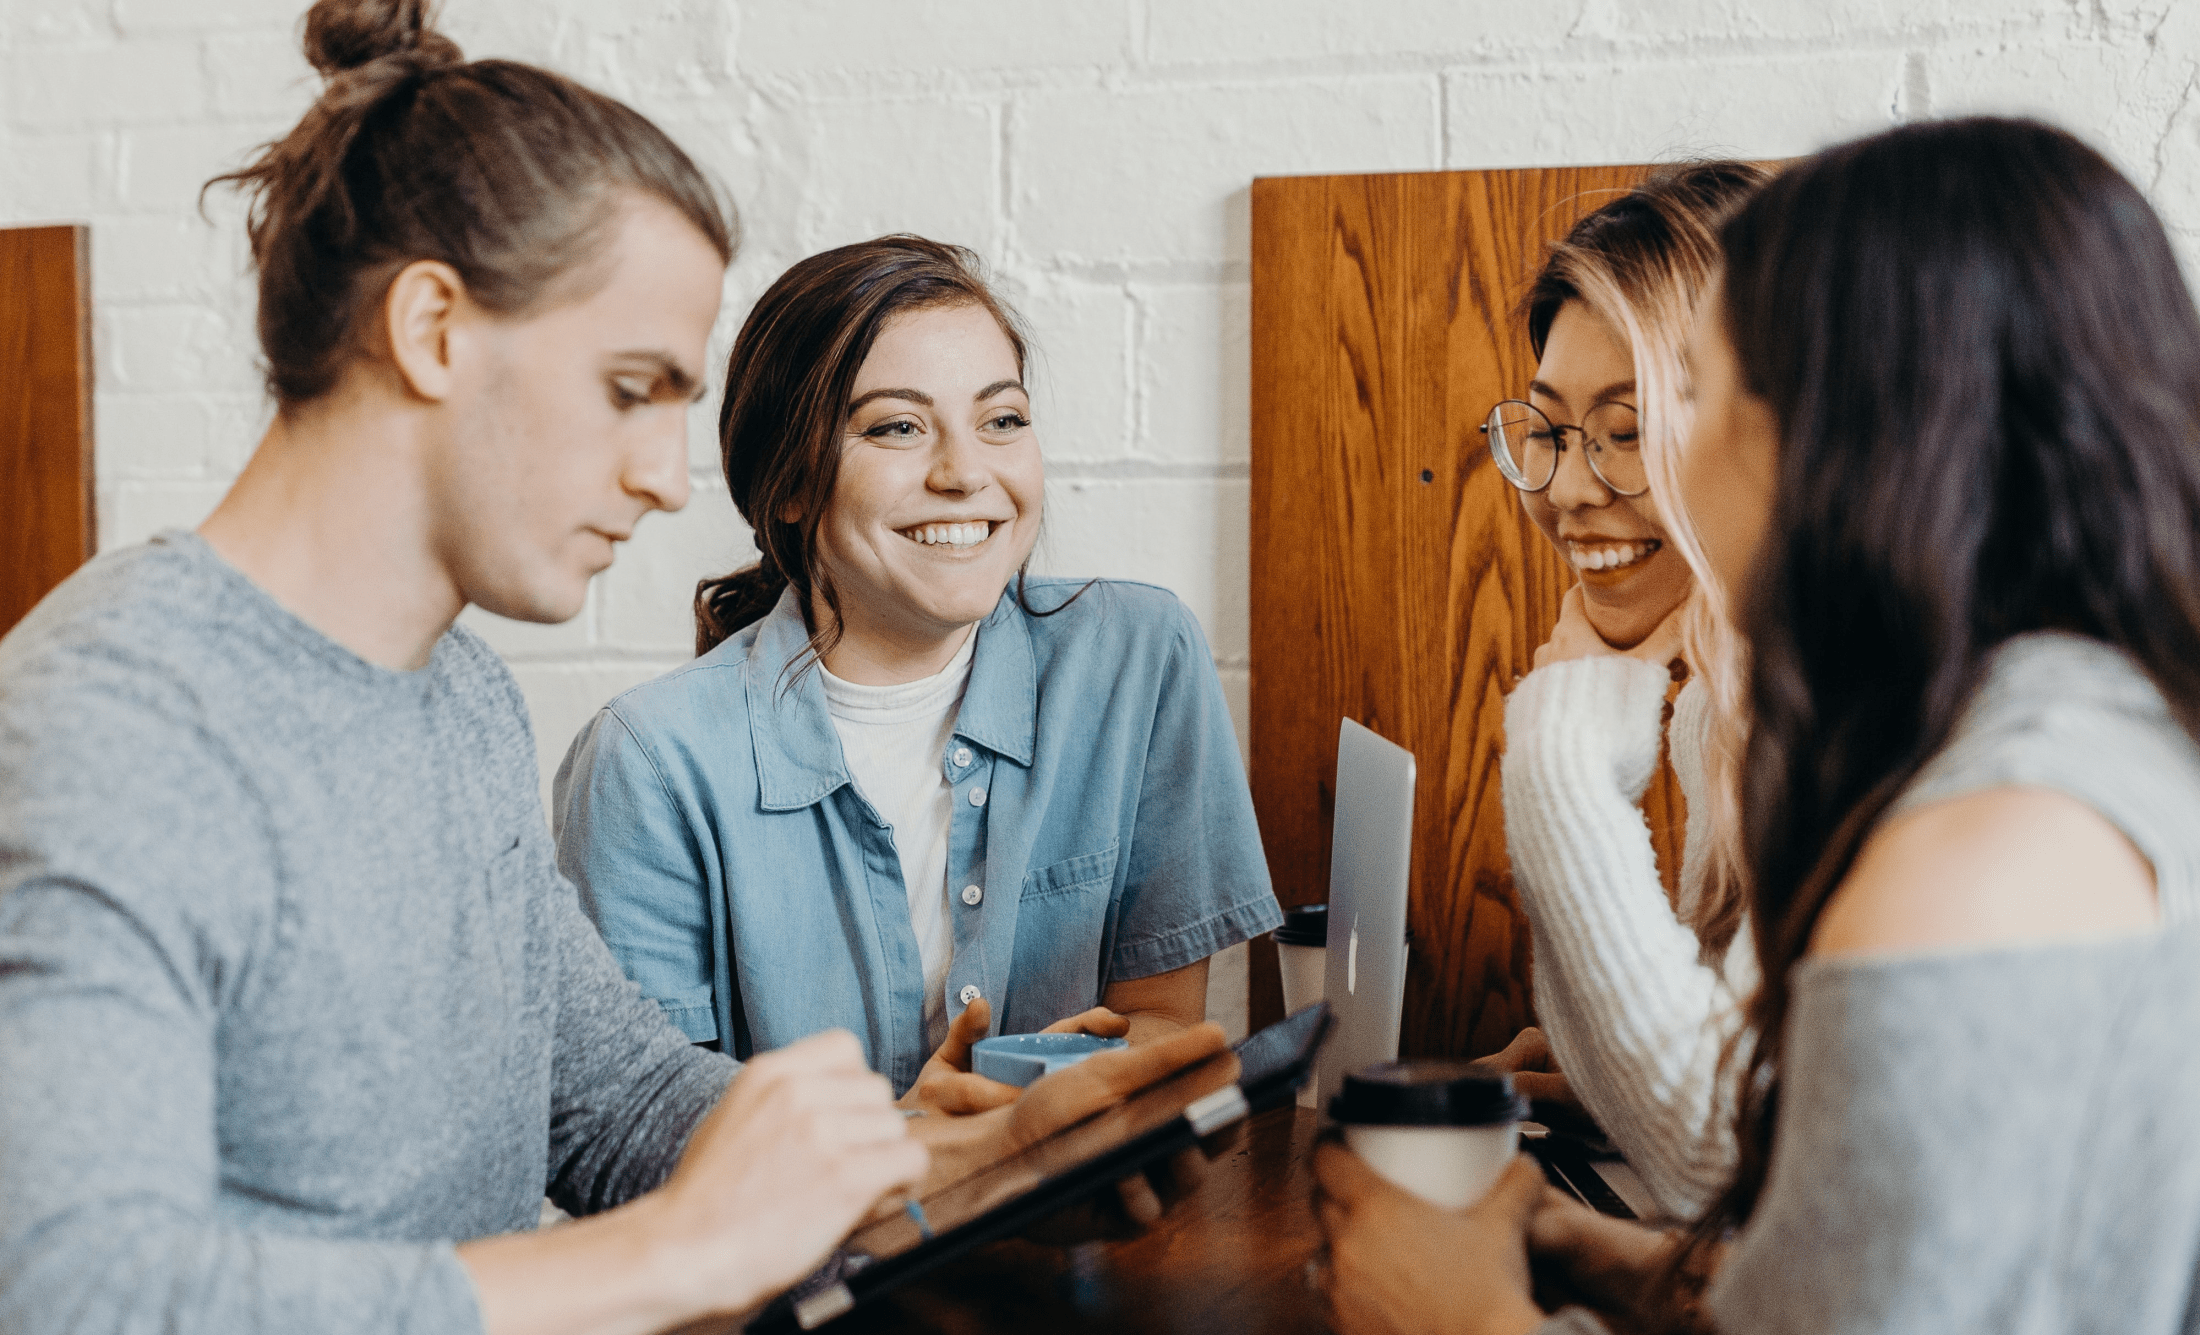 College Students Socializing & Connecting After Class